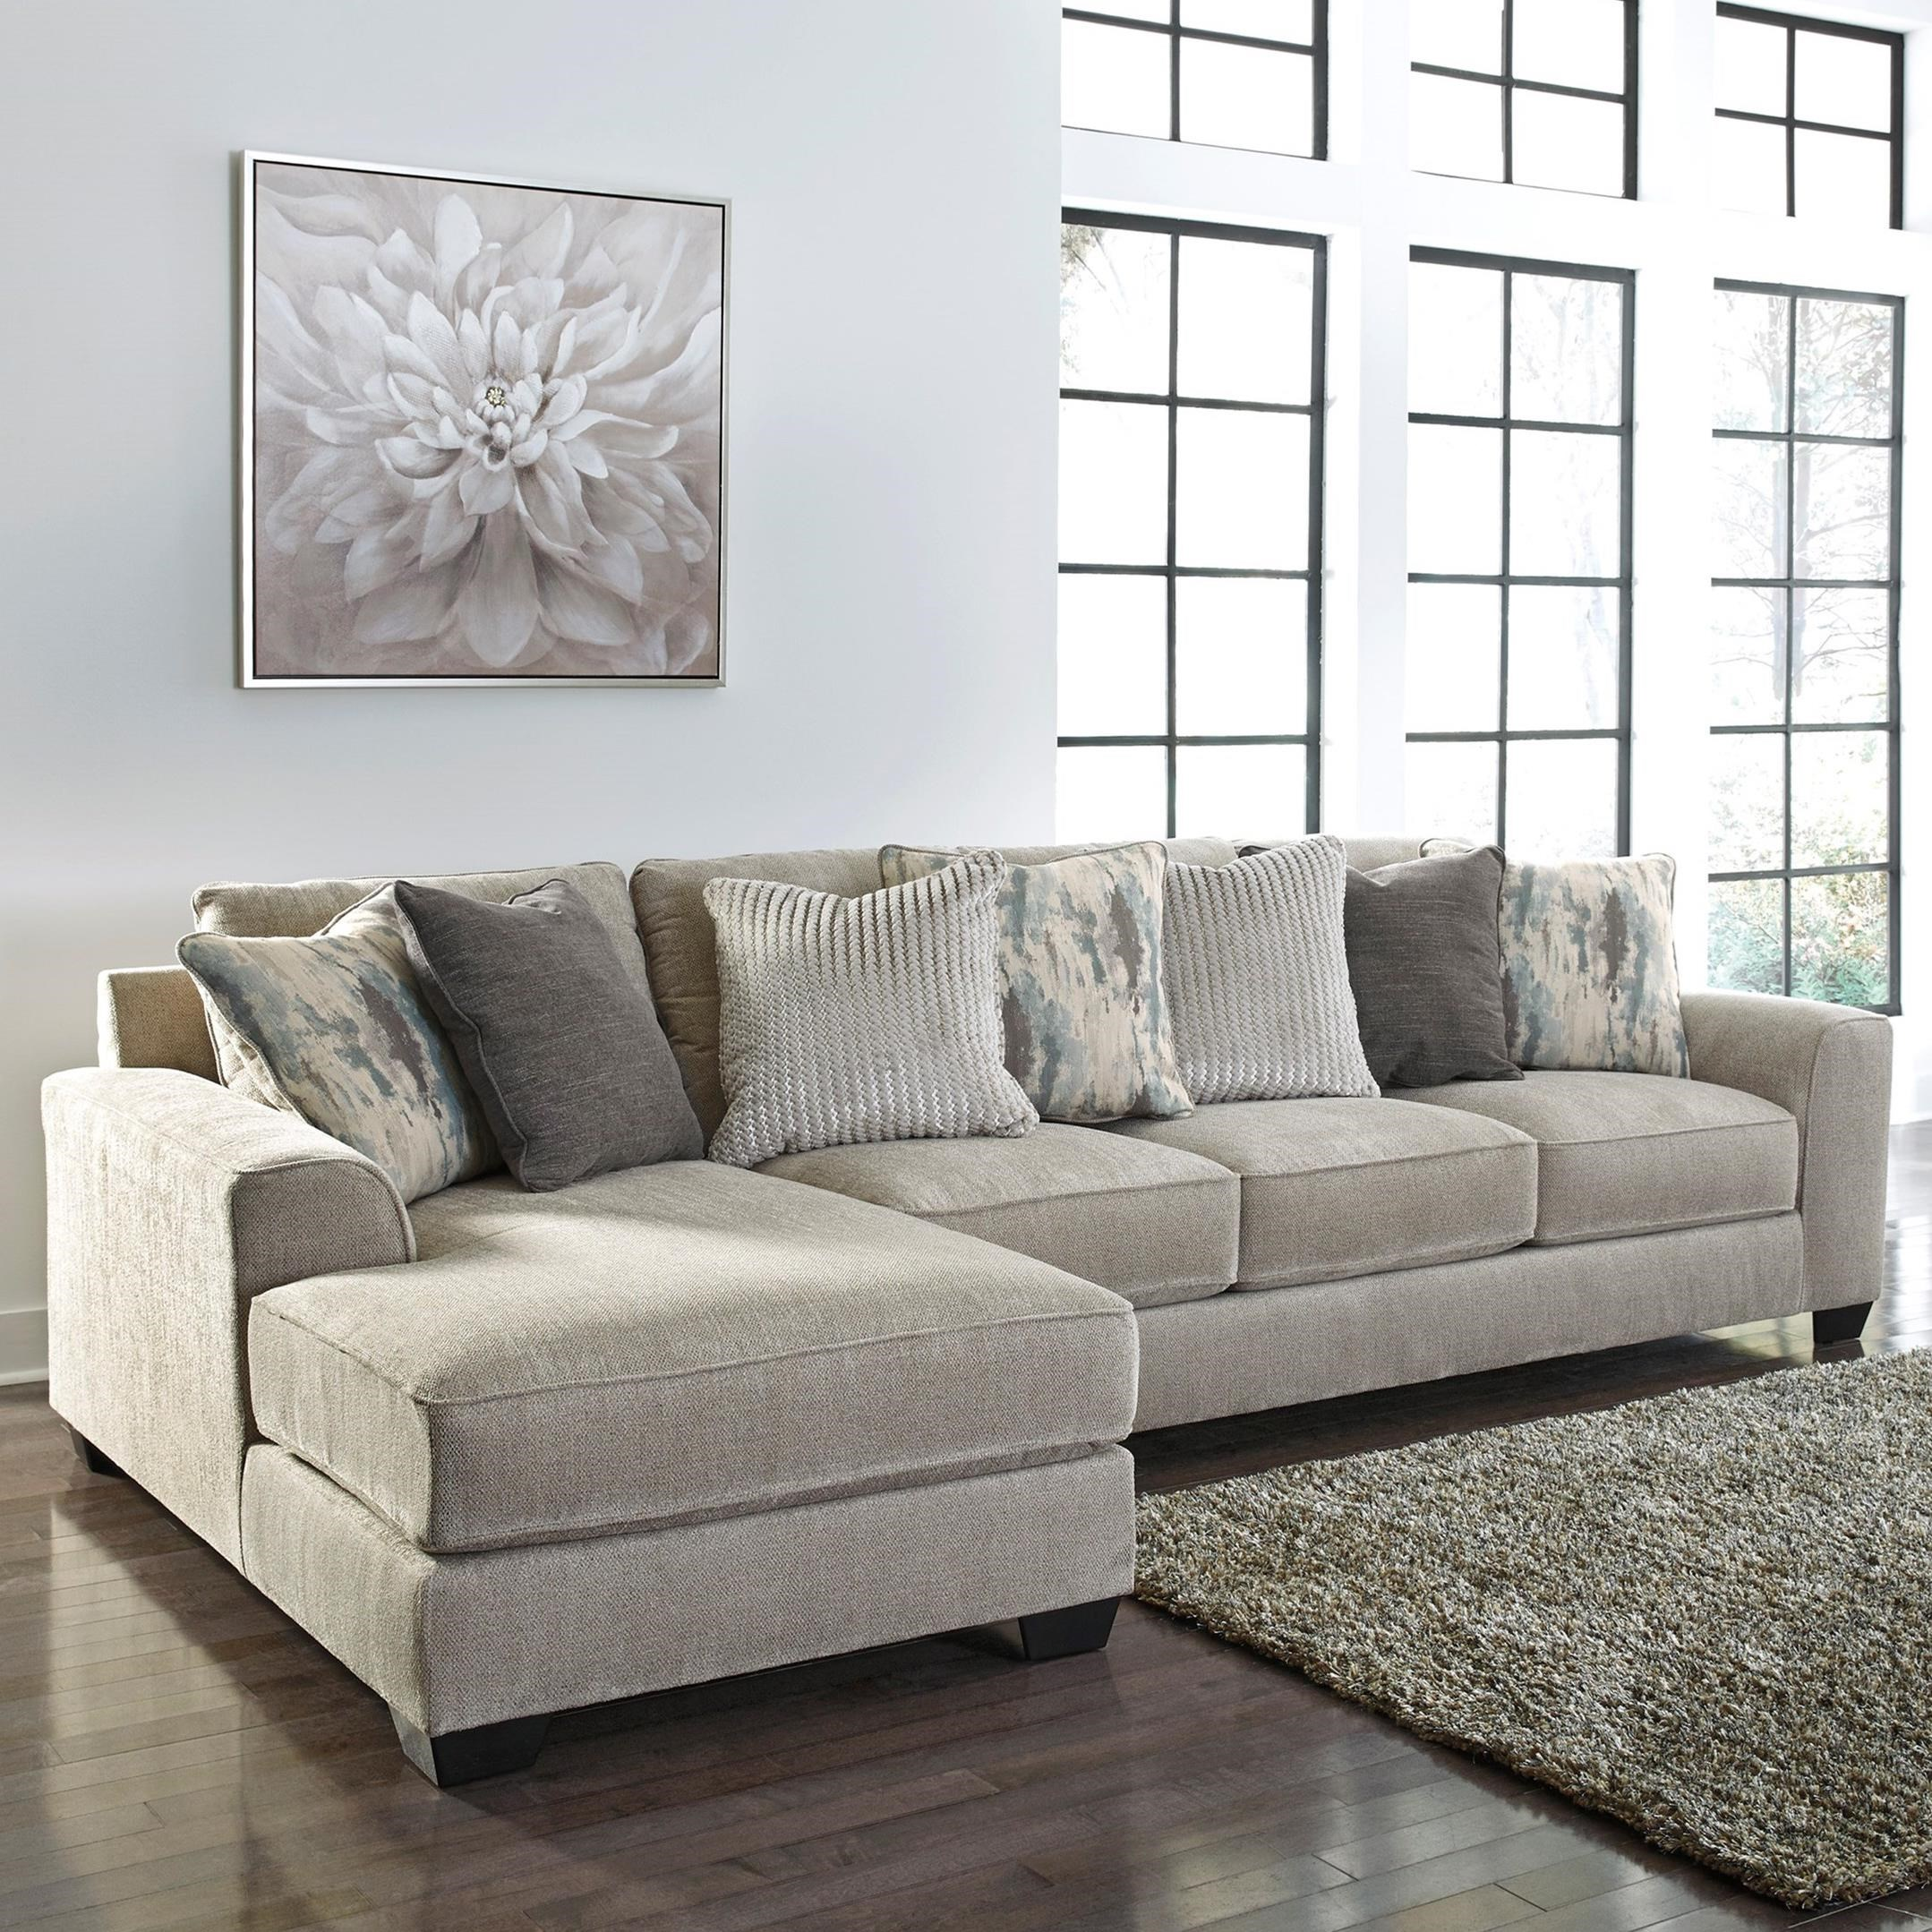 Ardsley 2-Piece Sectional with Left Chaise by Benchcraft at Simply Home by Lindy's